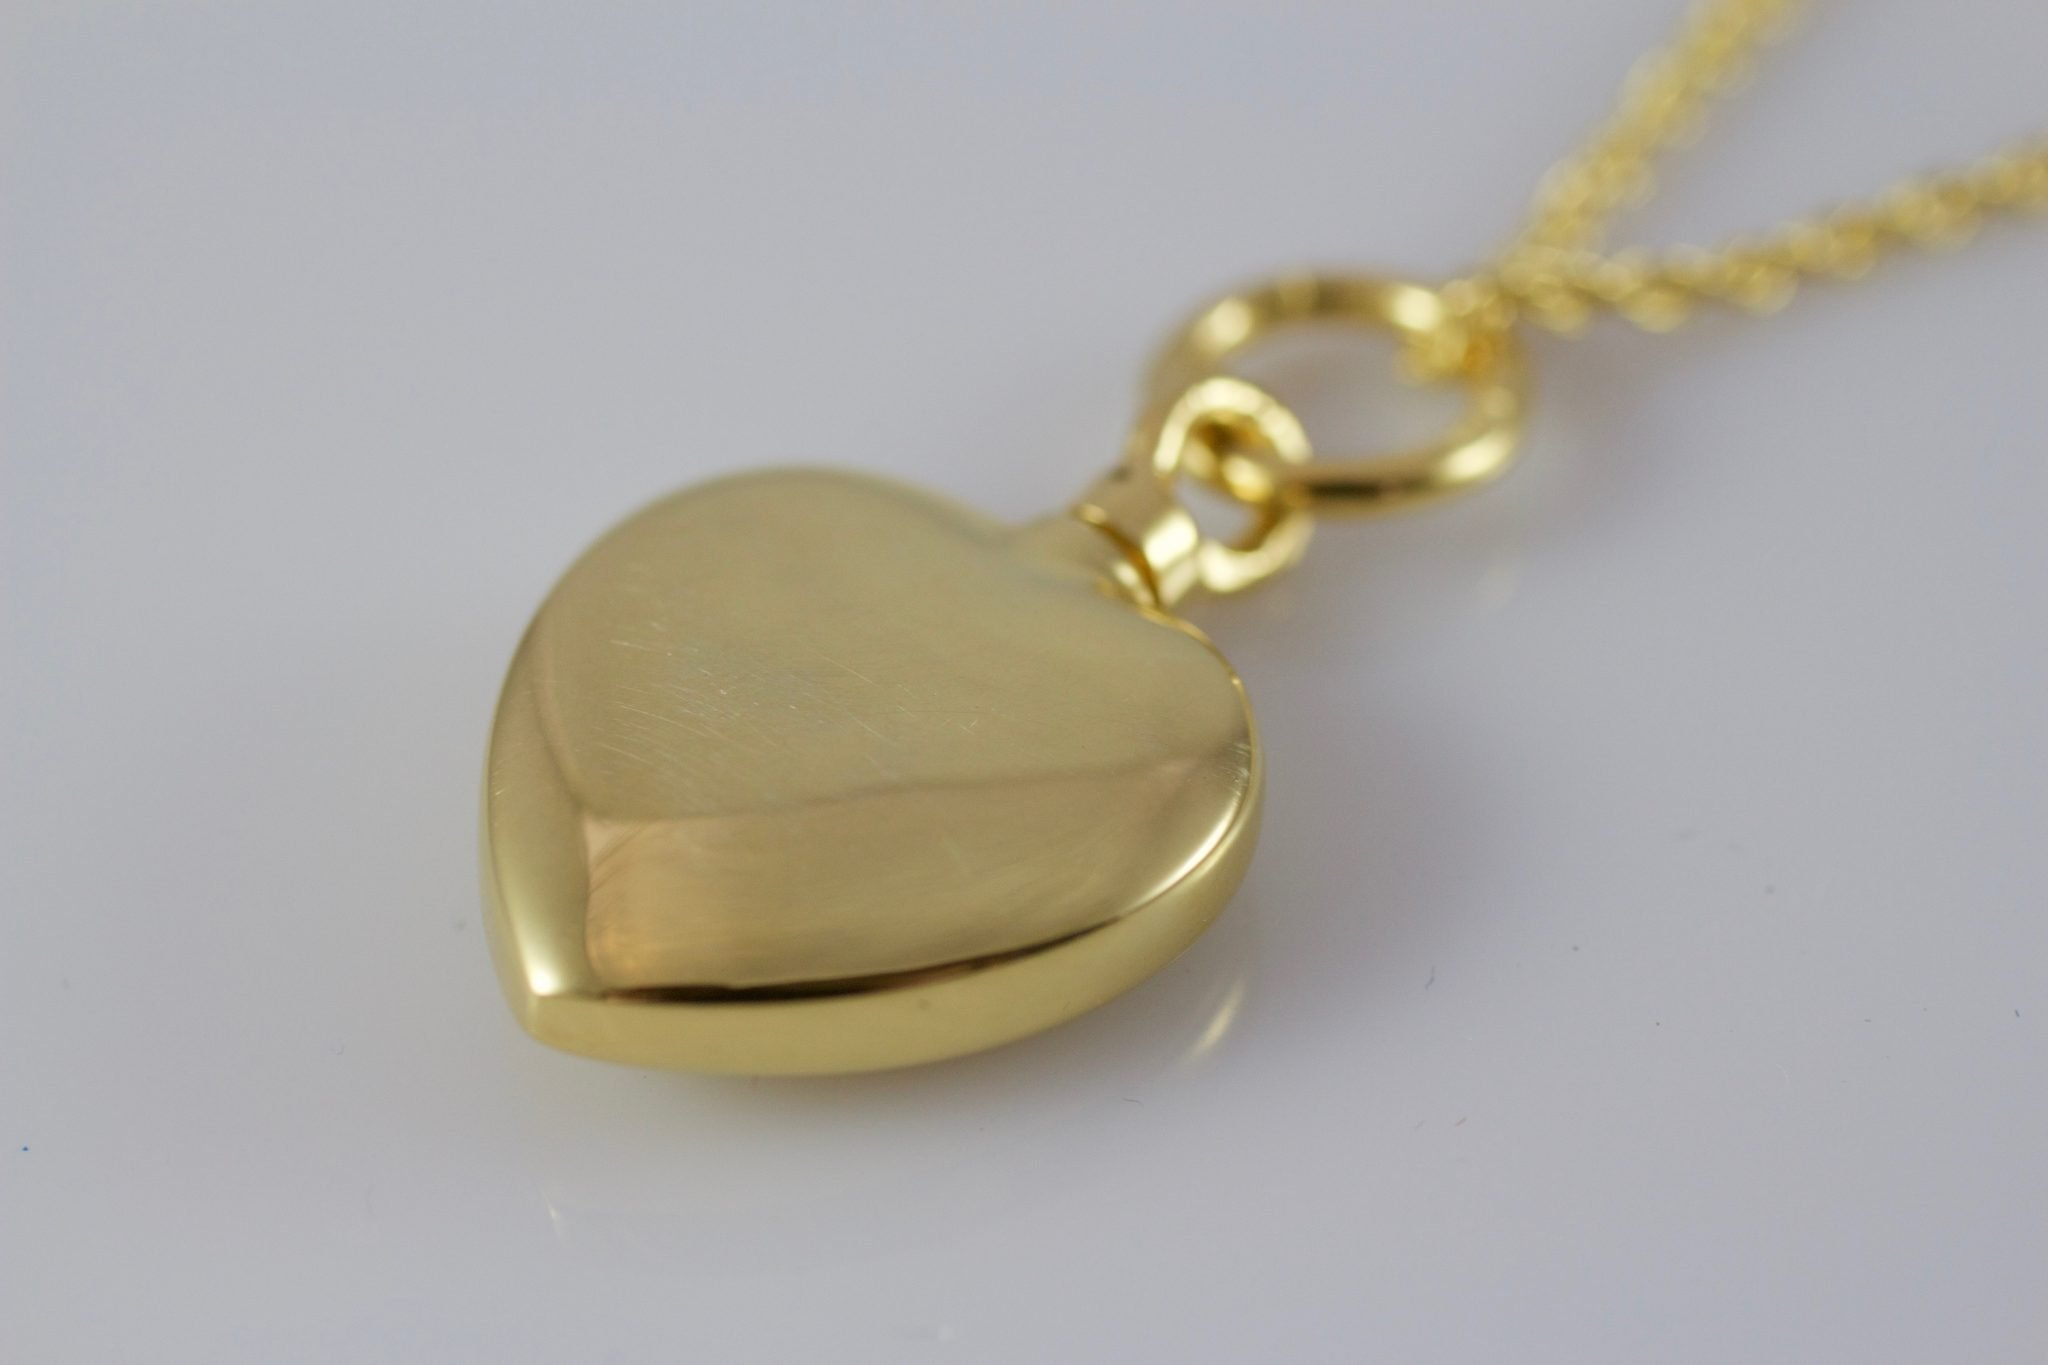 necklace memorial dad gift sympathy jewelry gold pendant pin